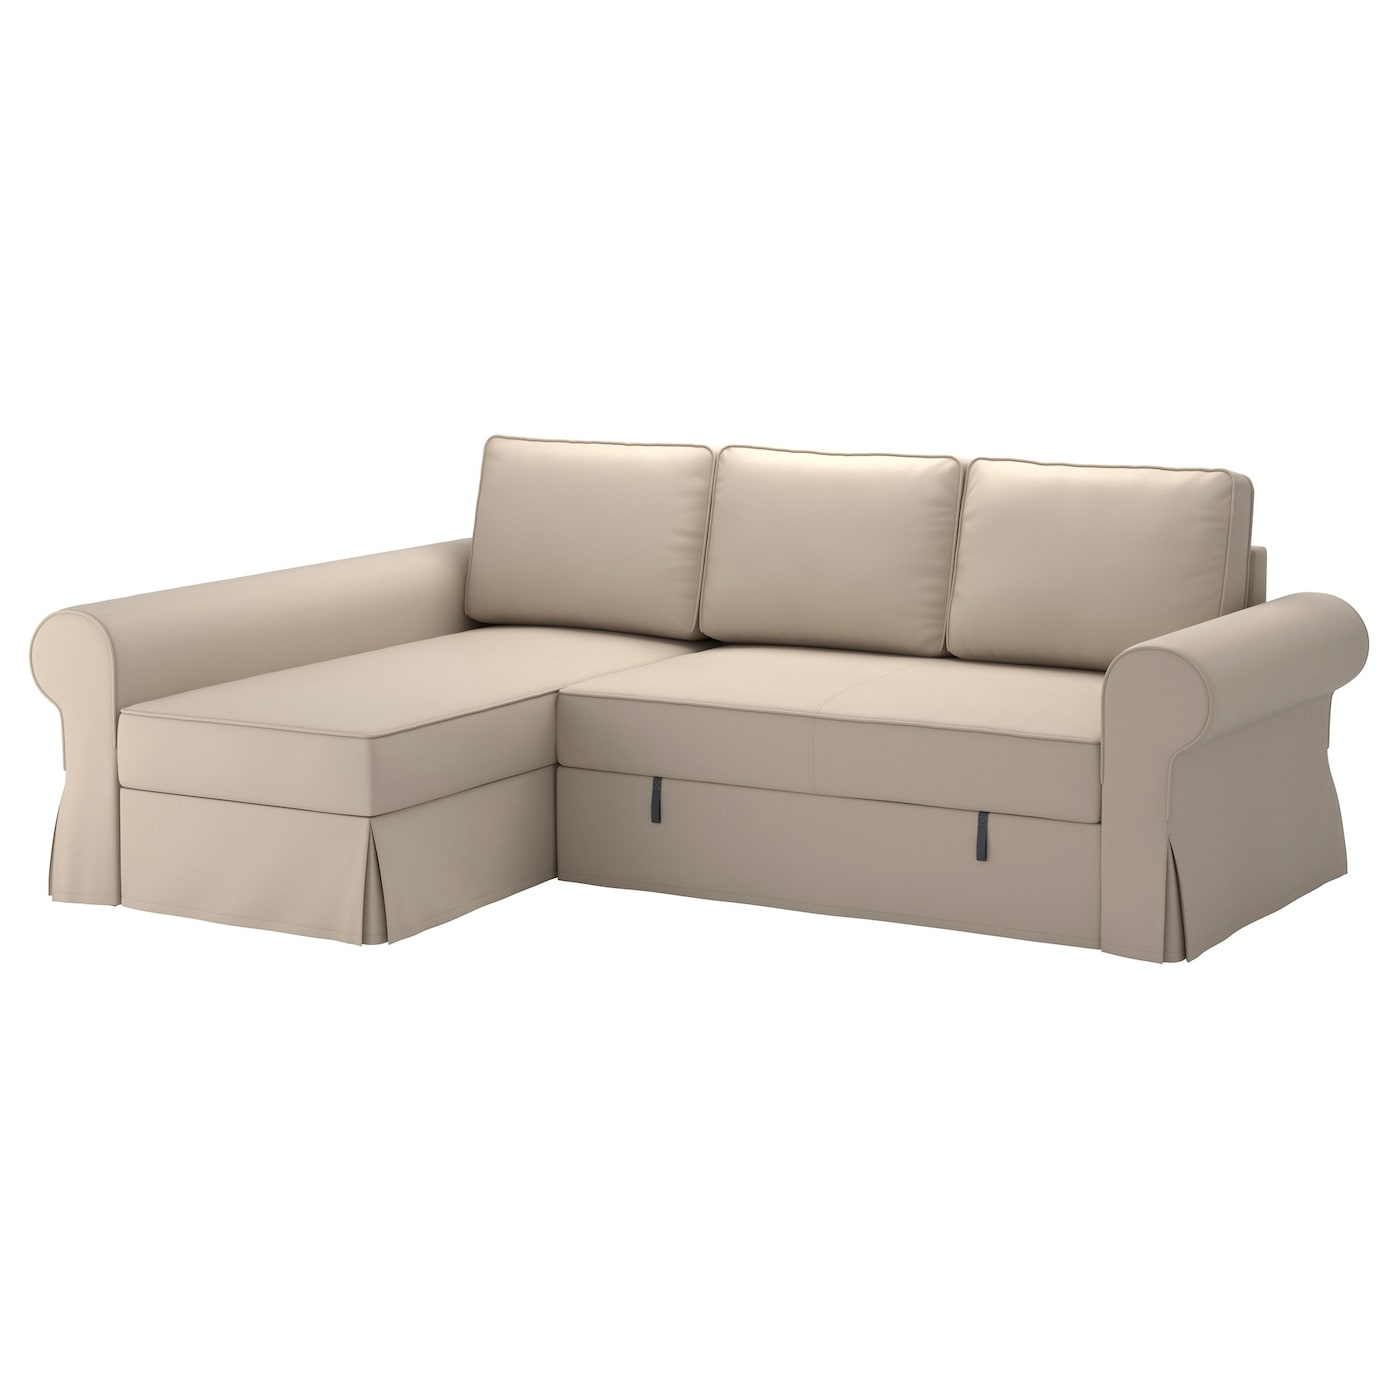 Backabro sofa bed with chaise longue ramna beige ikea for Chaise longue sofabed